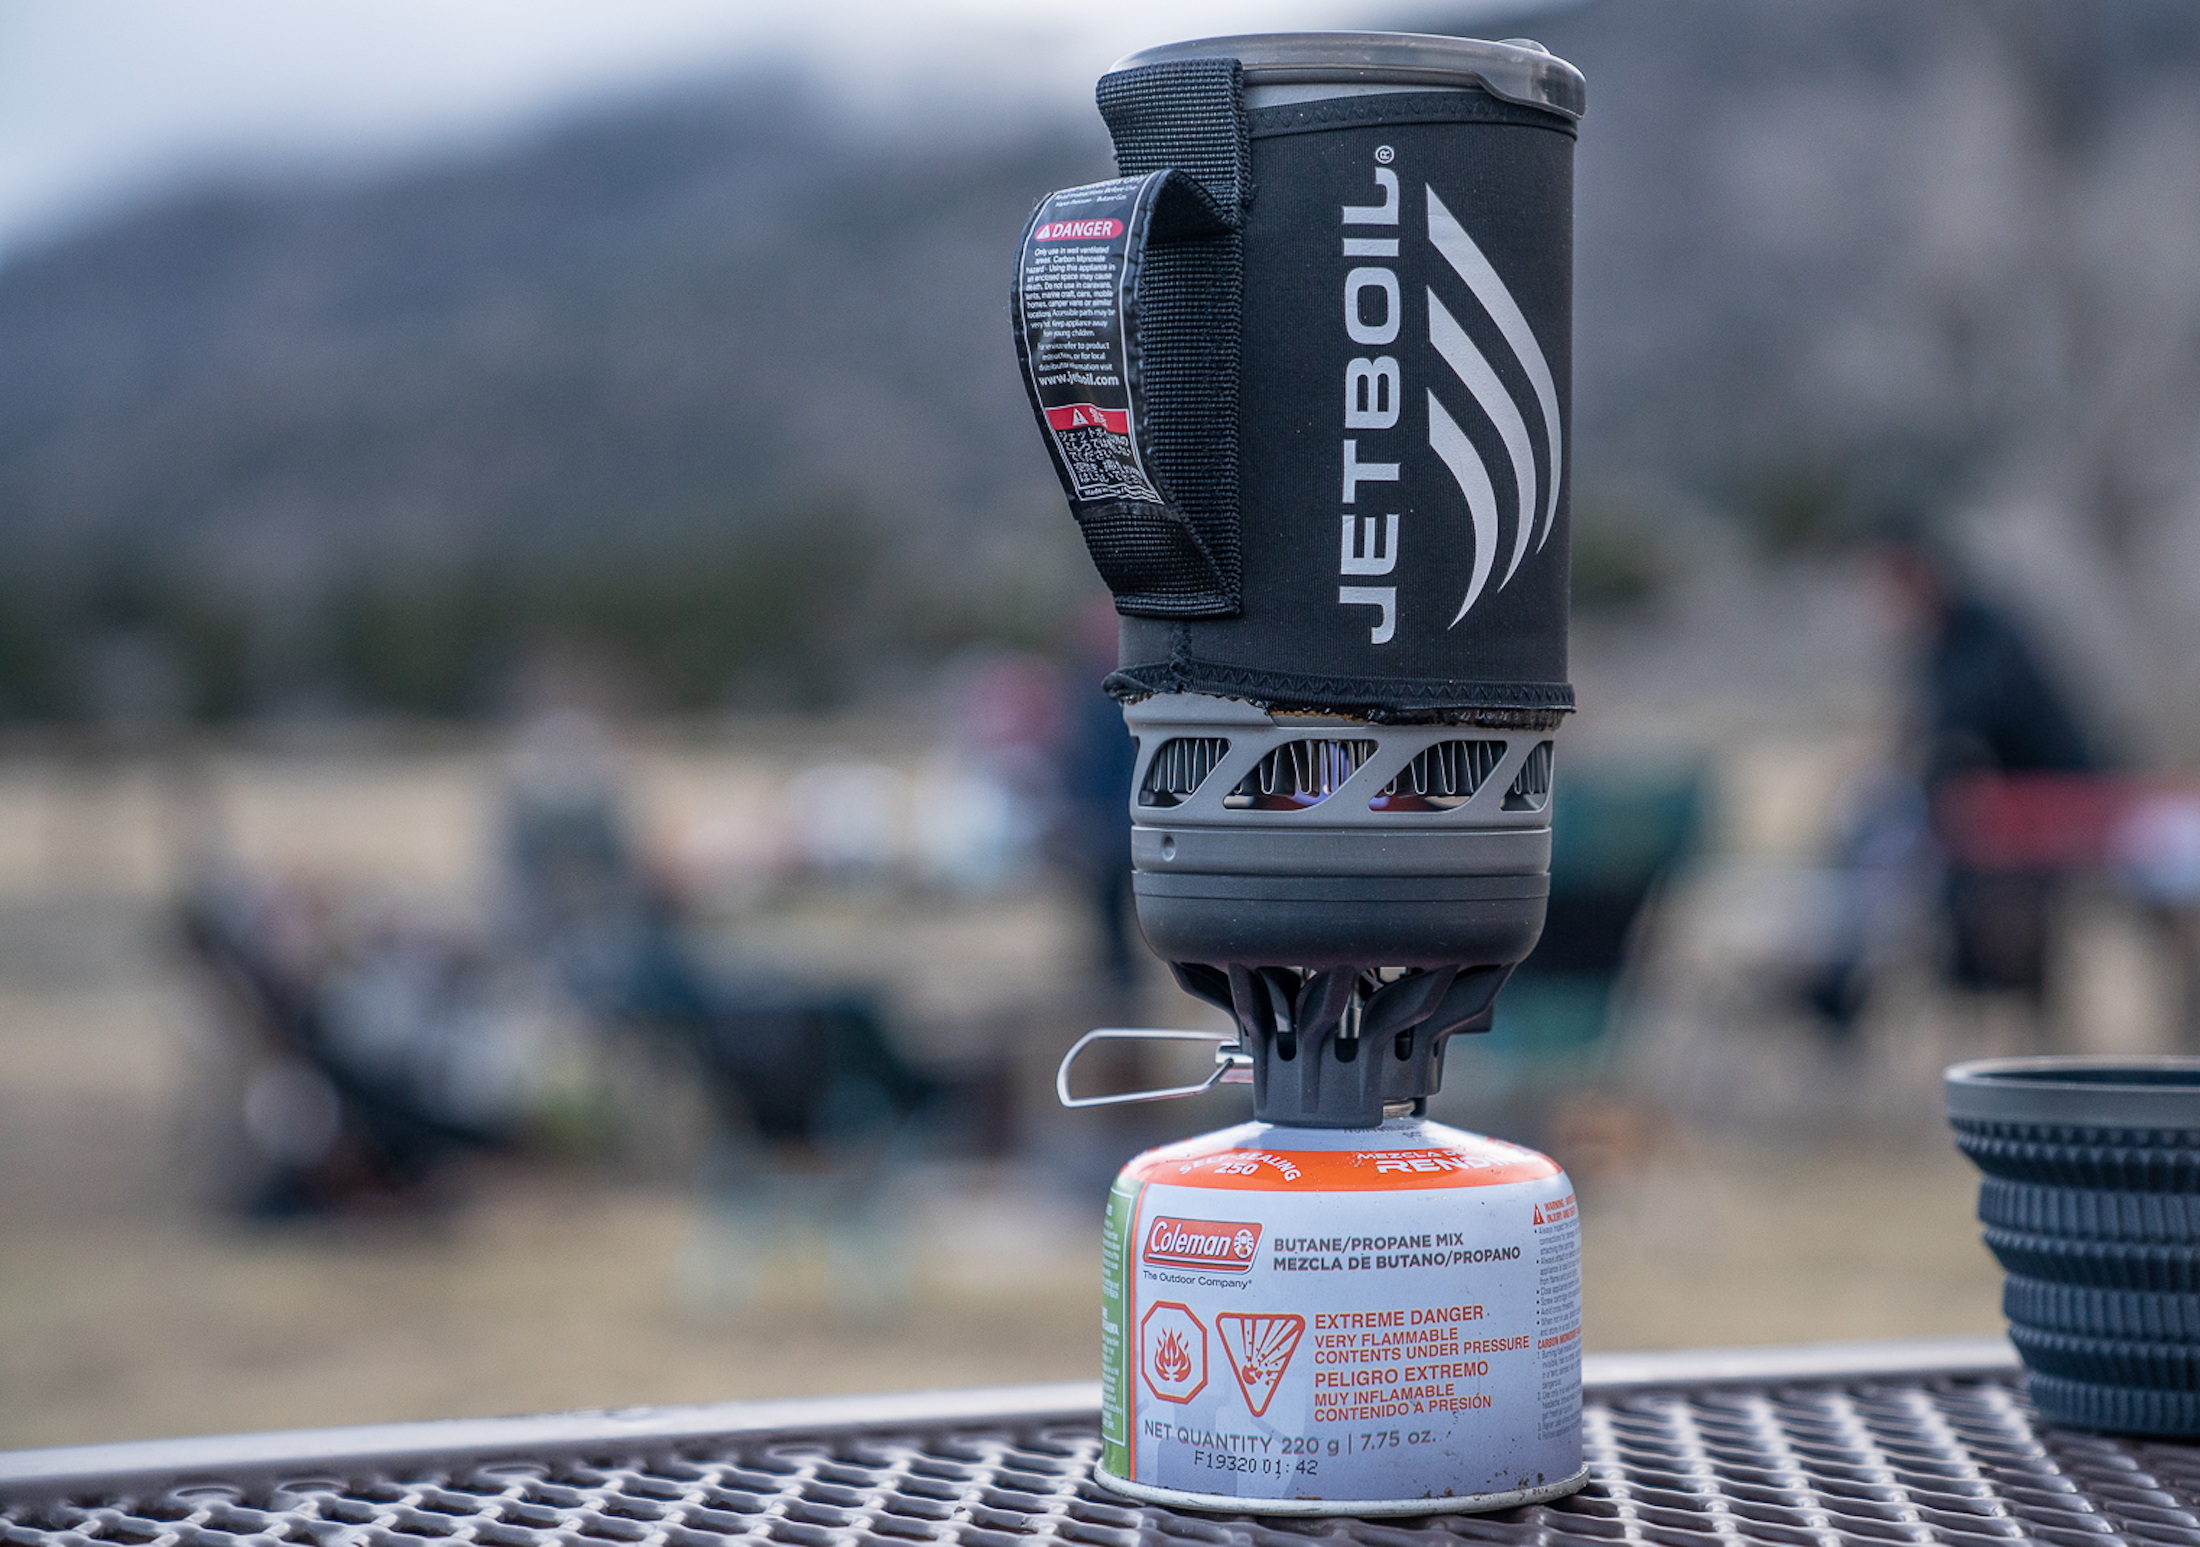 a jetboil stove system on a table at a campsite